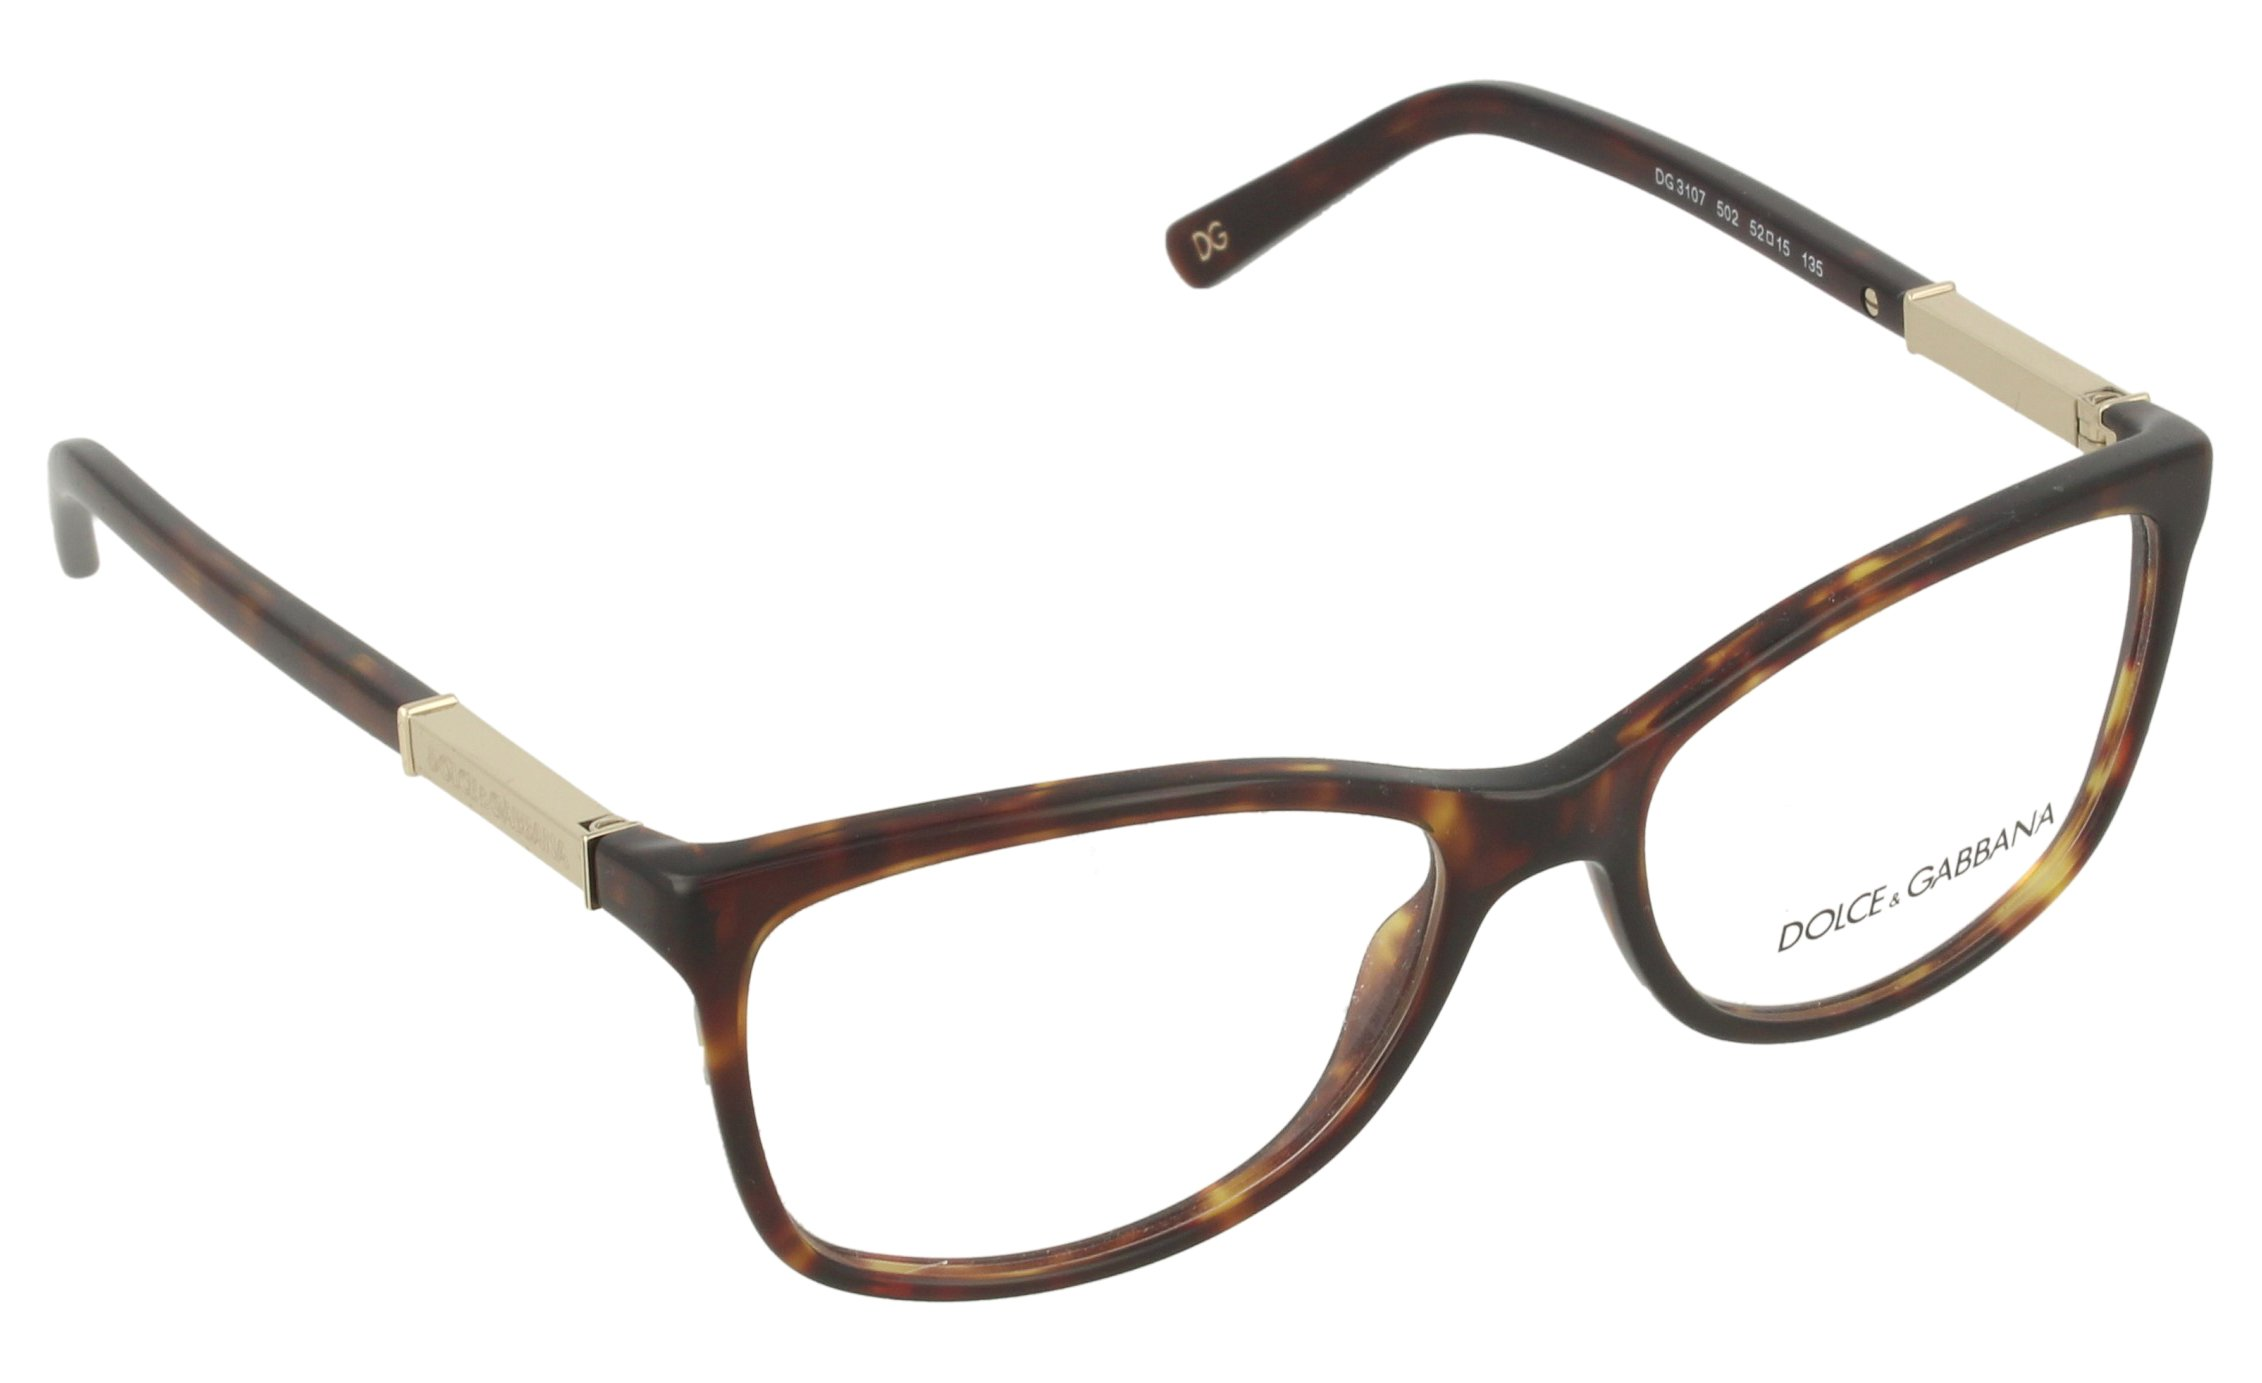 aeee9b6d9840a Dolce Gabbana Eyeglasses Women Top Deals   Lowest Price ...